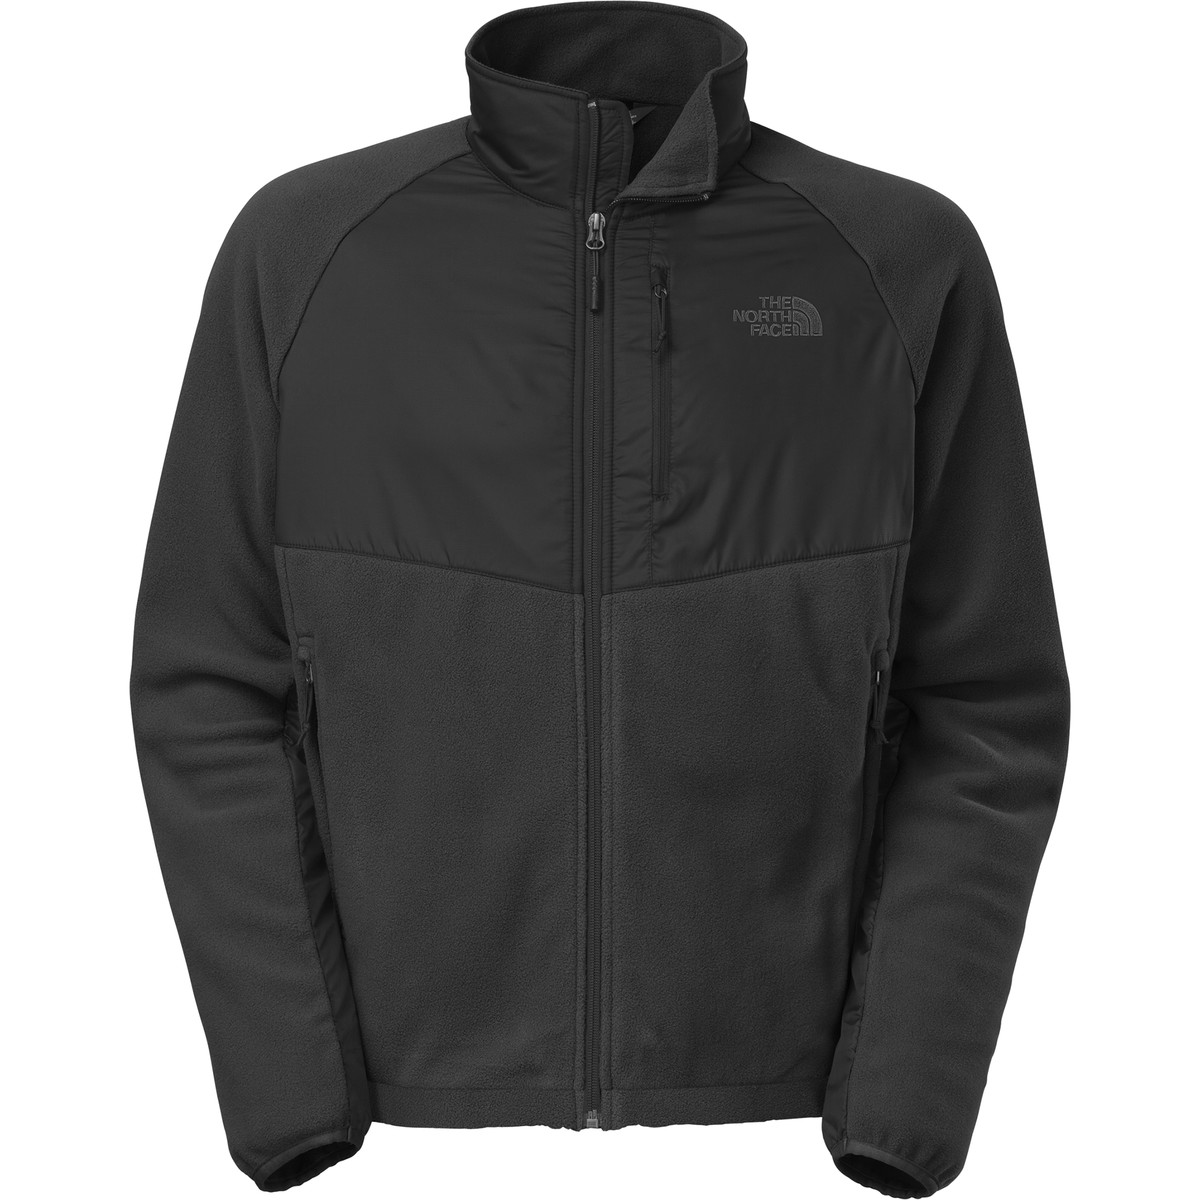 The North Face McEllison Jacket